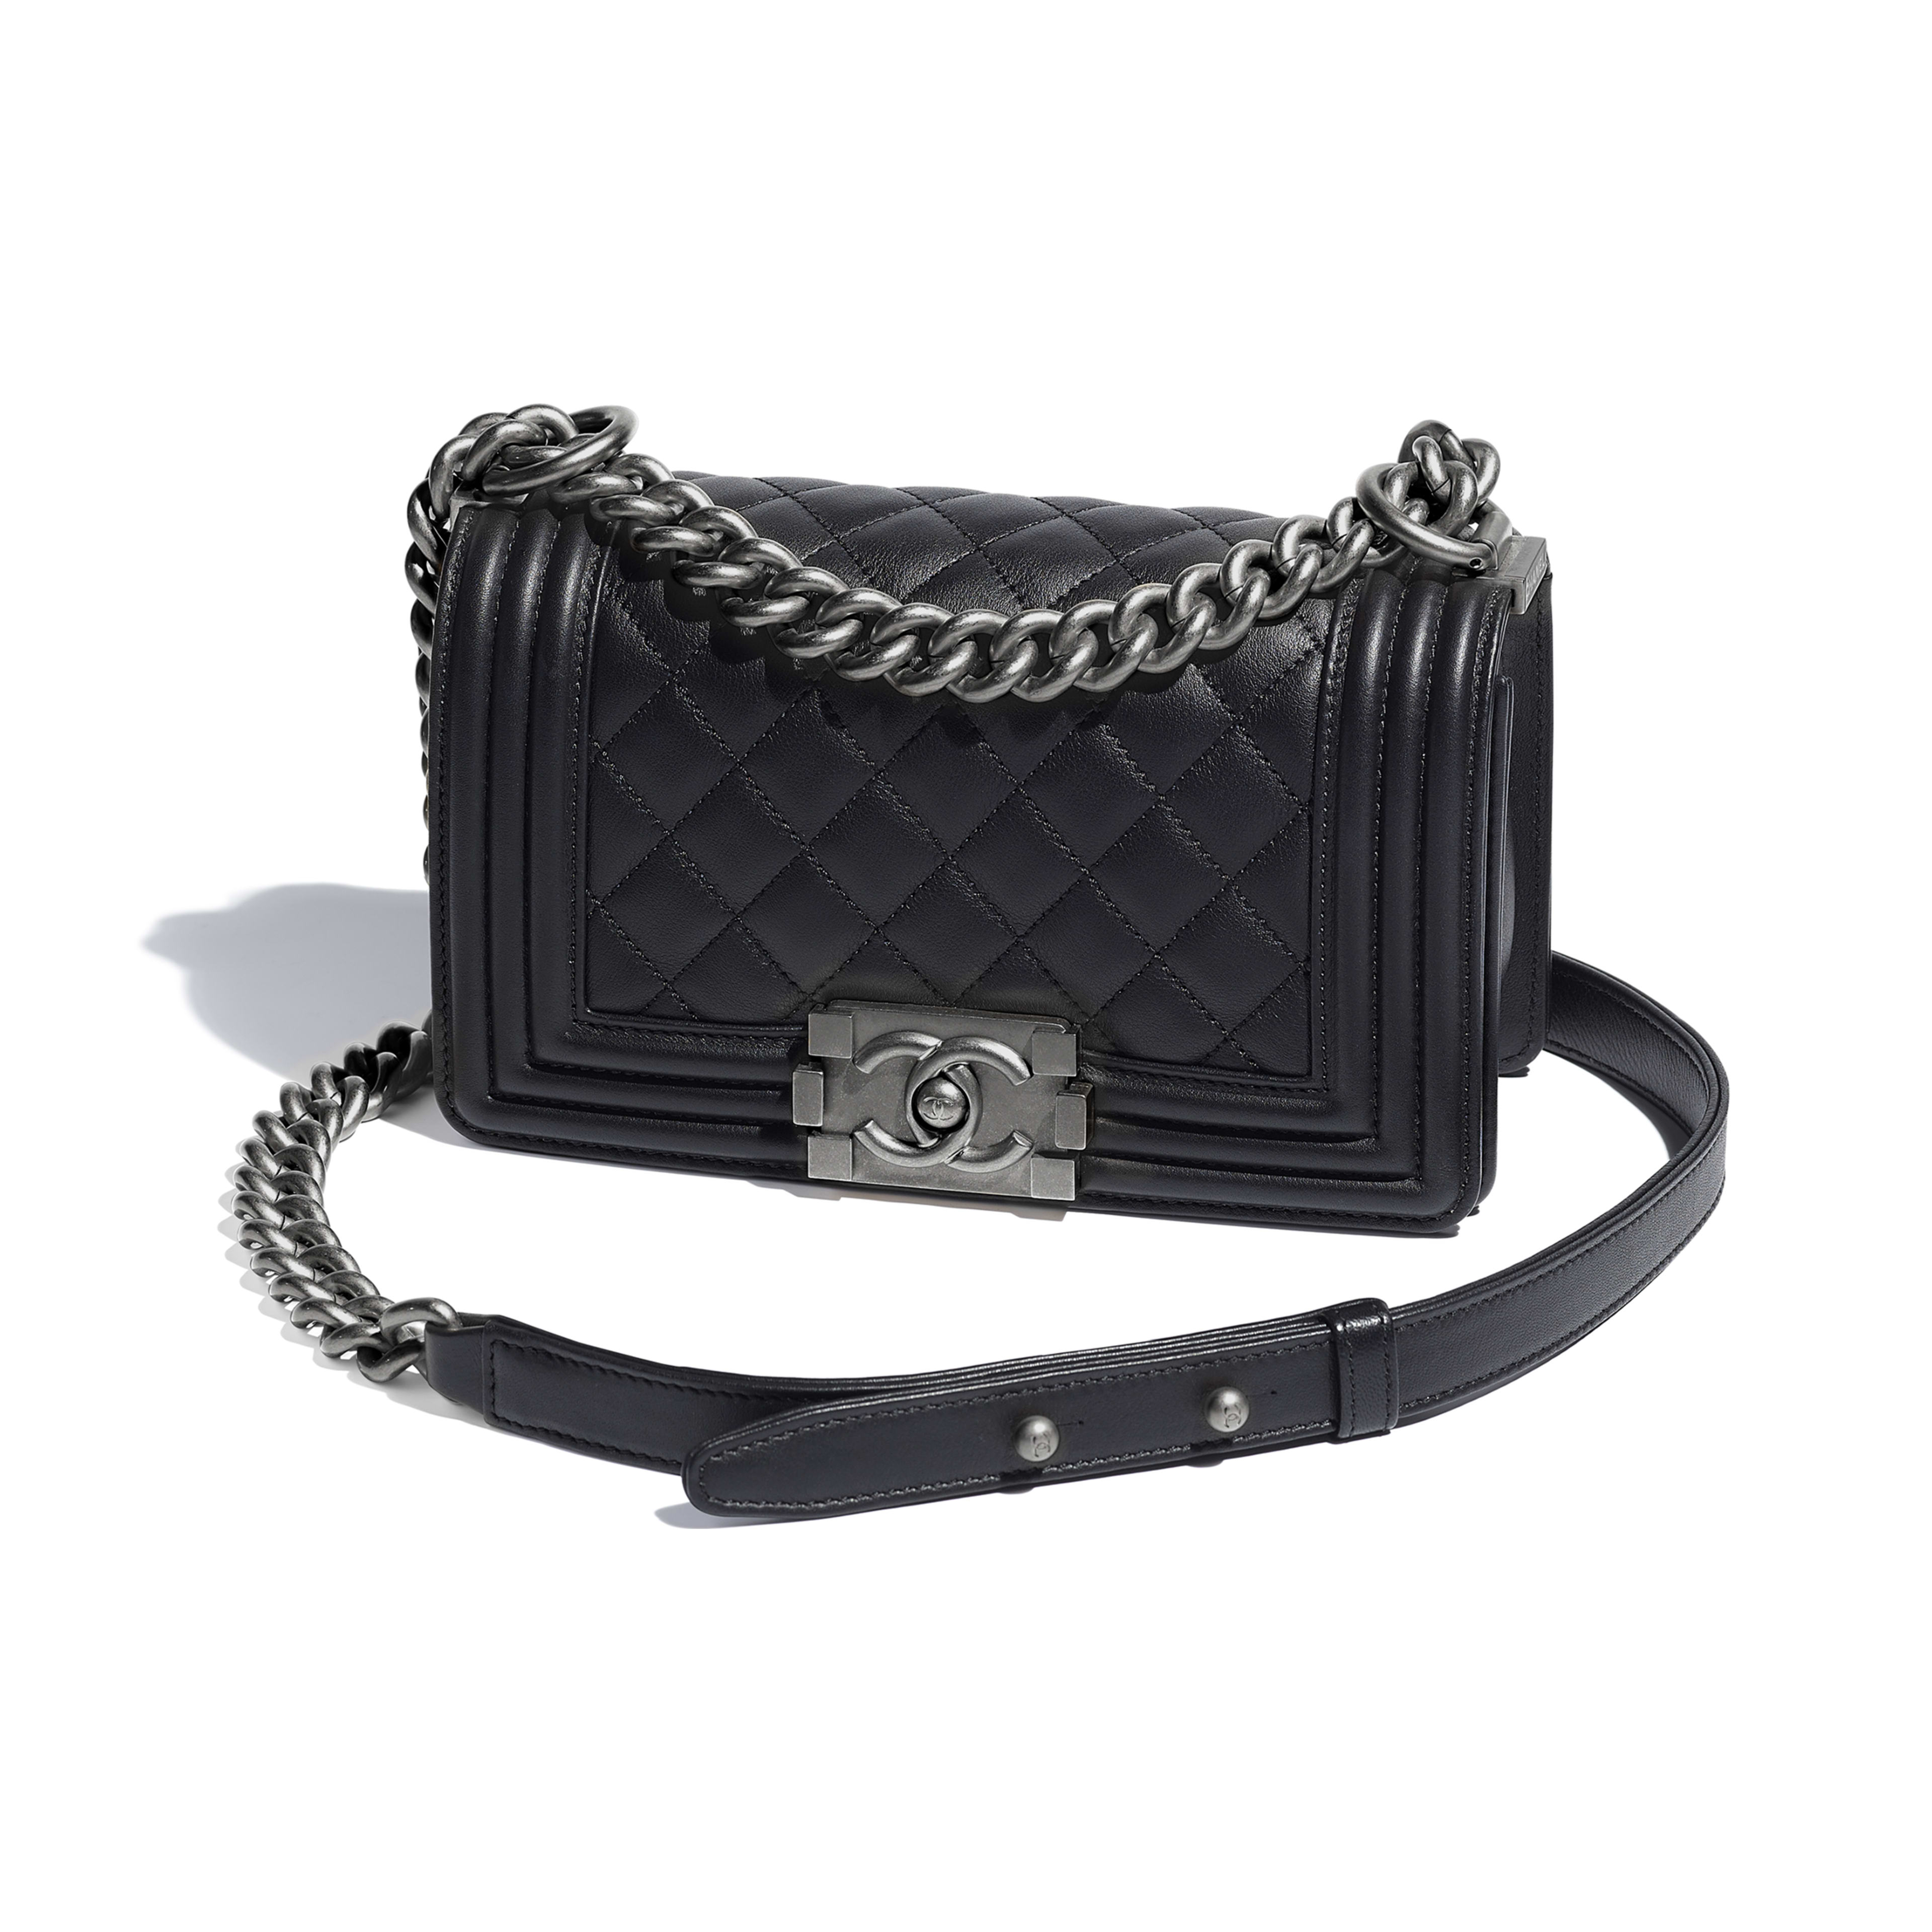 316e389f49b1 Boy Chanel Handbag Calfskin And Ruthenium | Stanford Center for ...